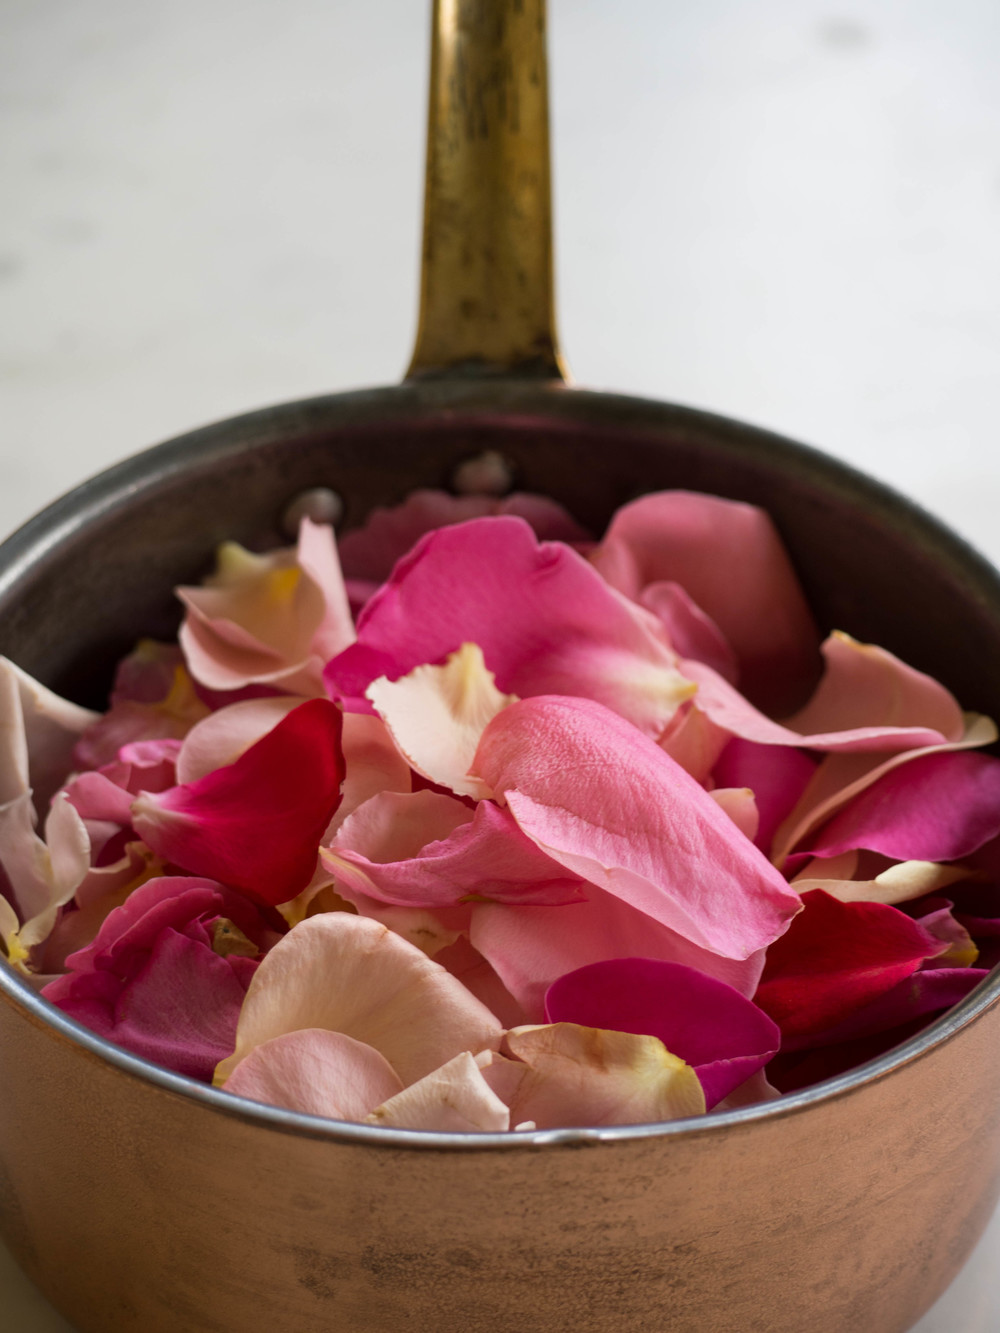 Edible Rose Petals - Kulinary Adventures of Kath